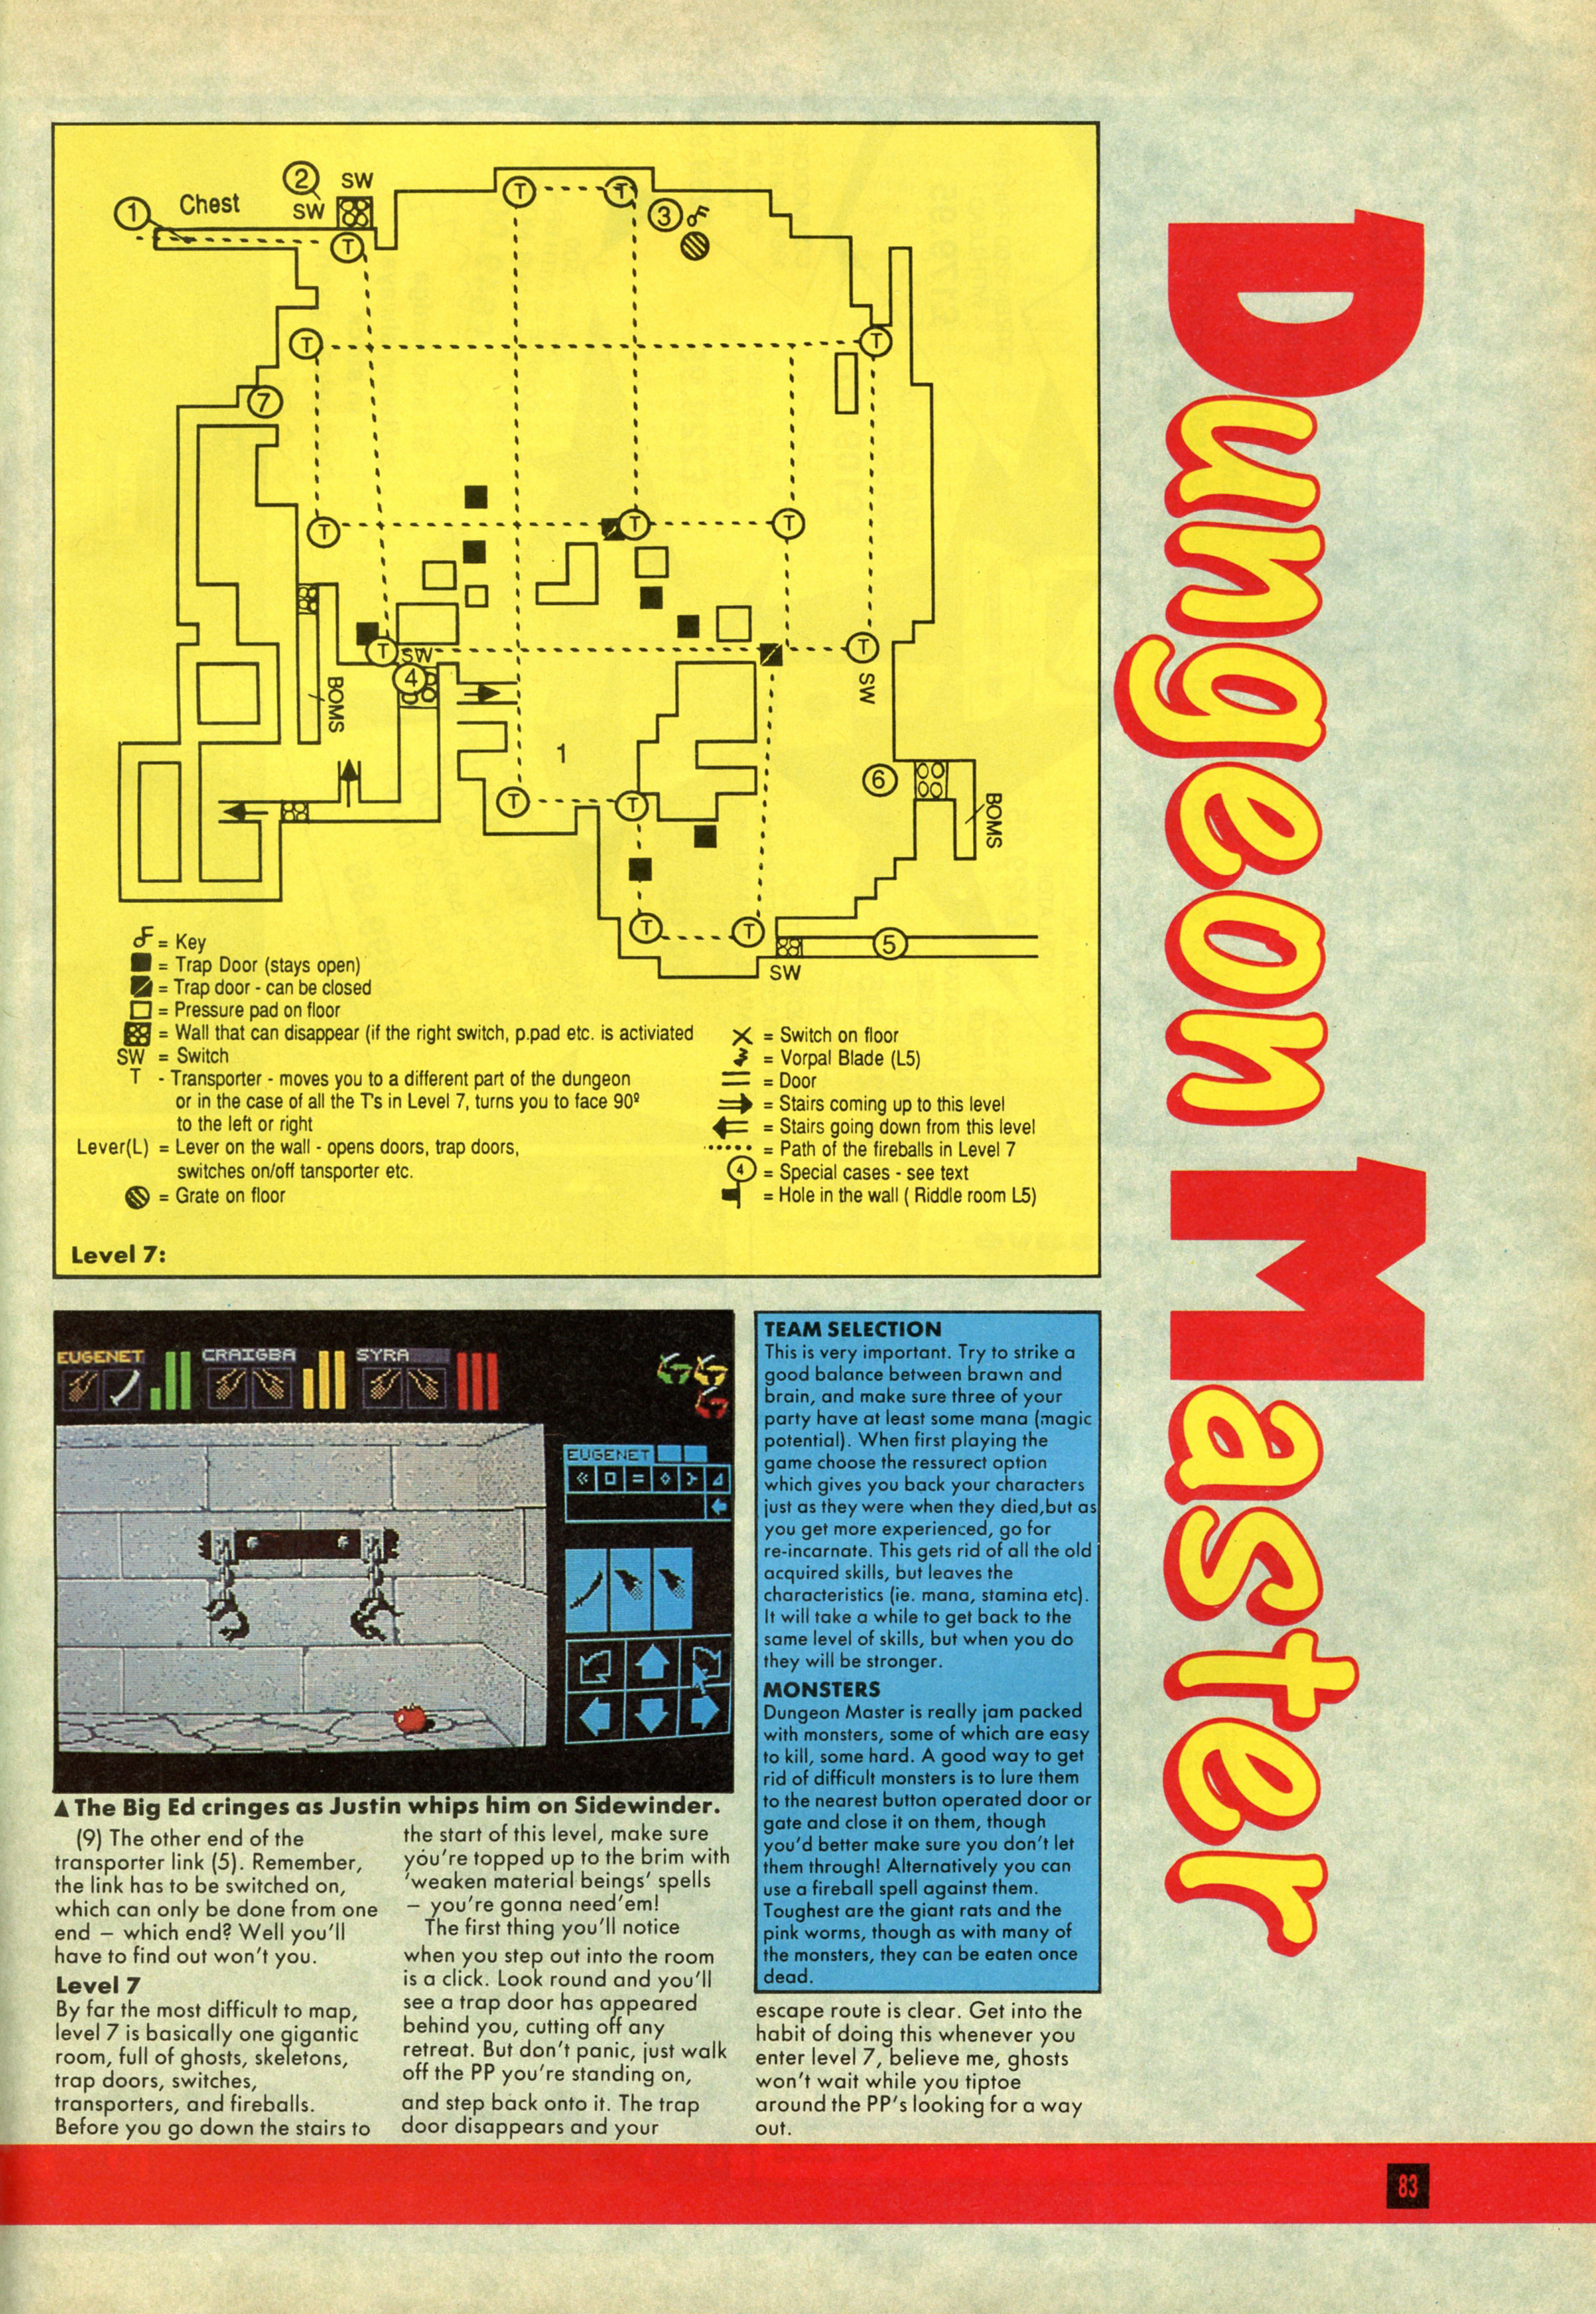 Dungeon Master Guide published in British magazine 'Computer And Video Games', Issue #81 July 1988, Page 83